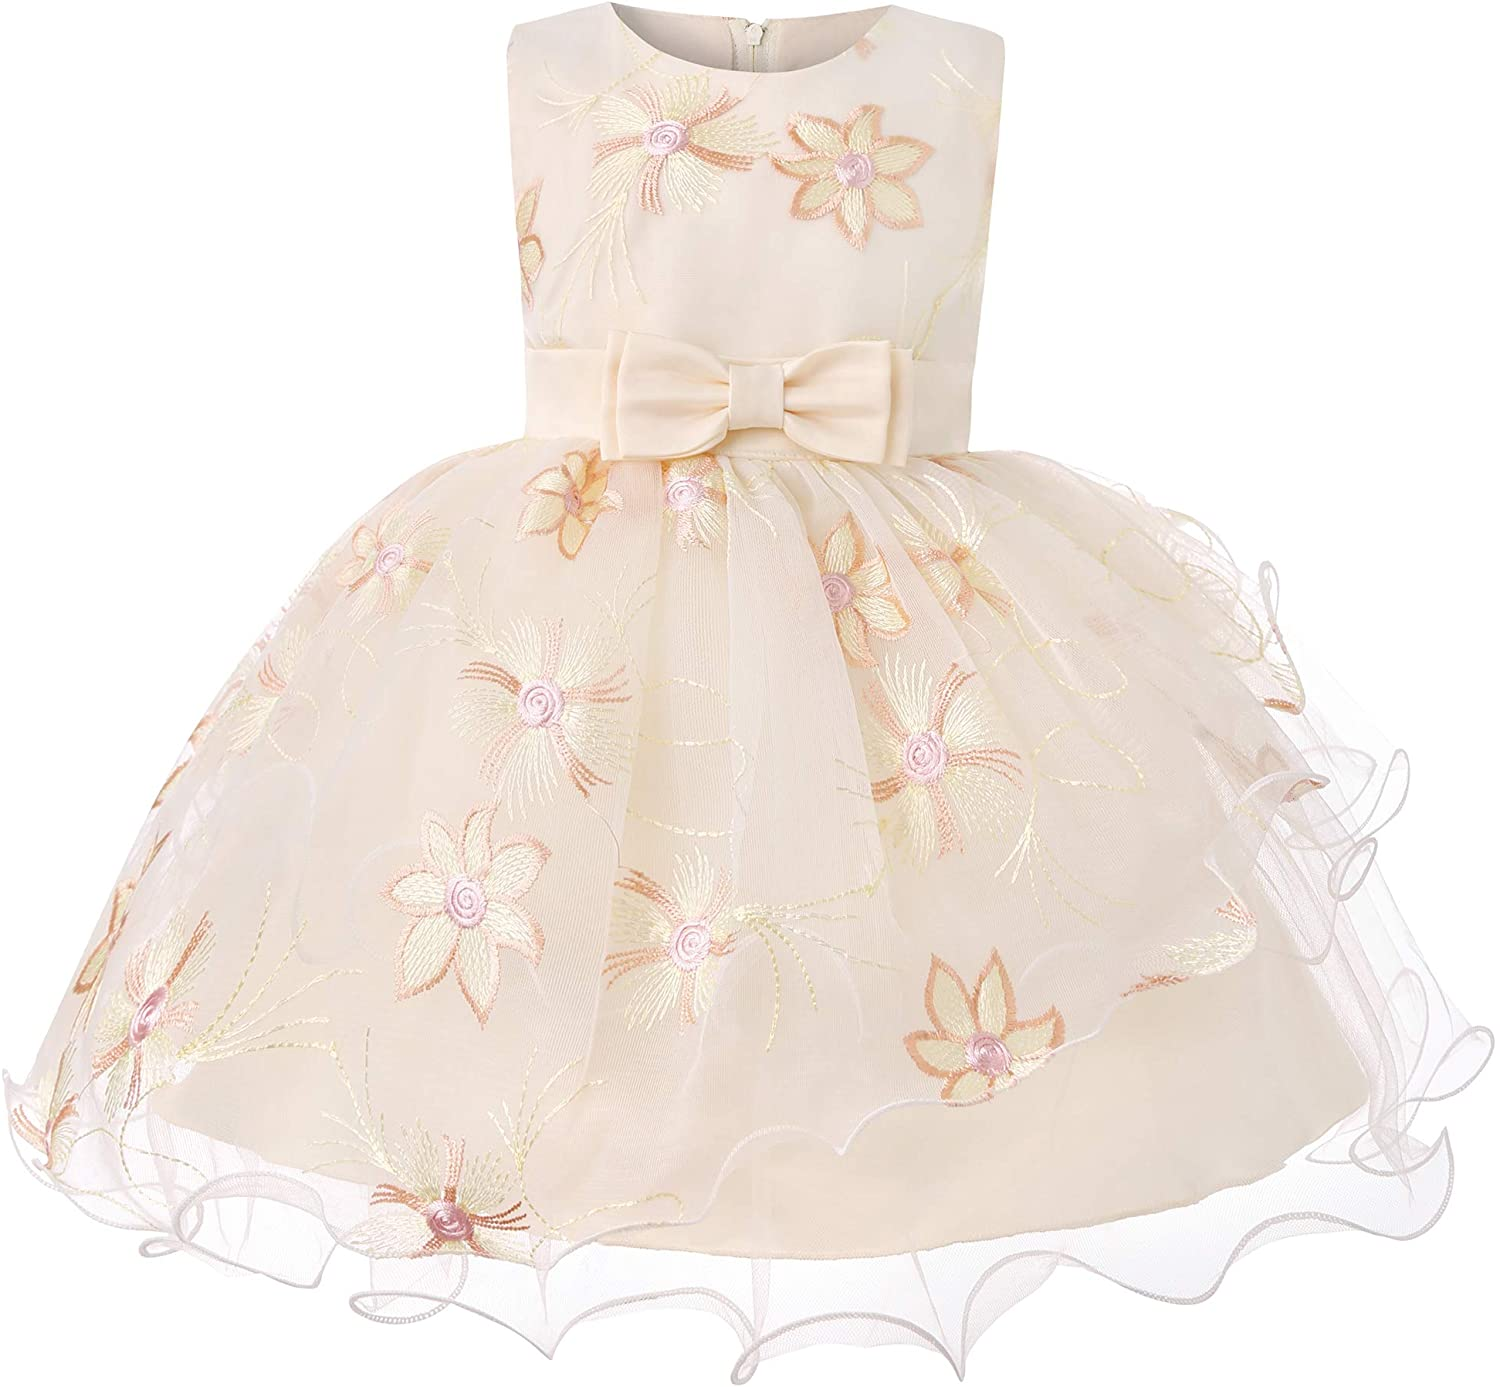 LLQKJOH Baby Dresses Party Wedding Toddler Special Occasion for Newborn Baby Girls